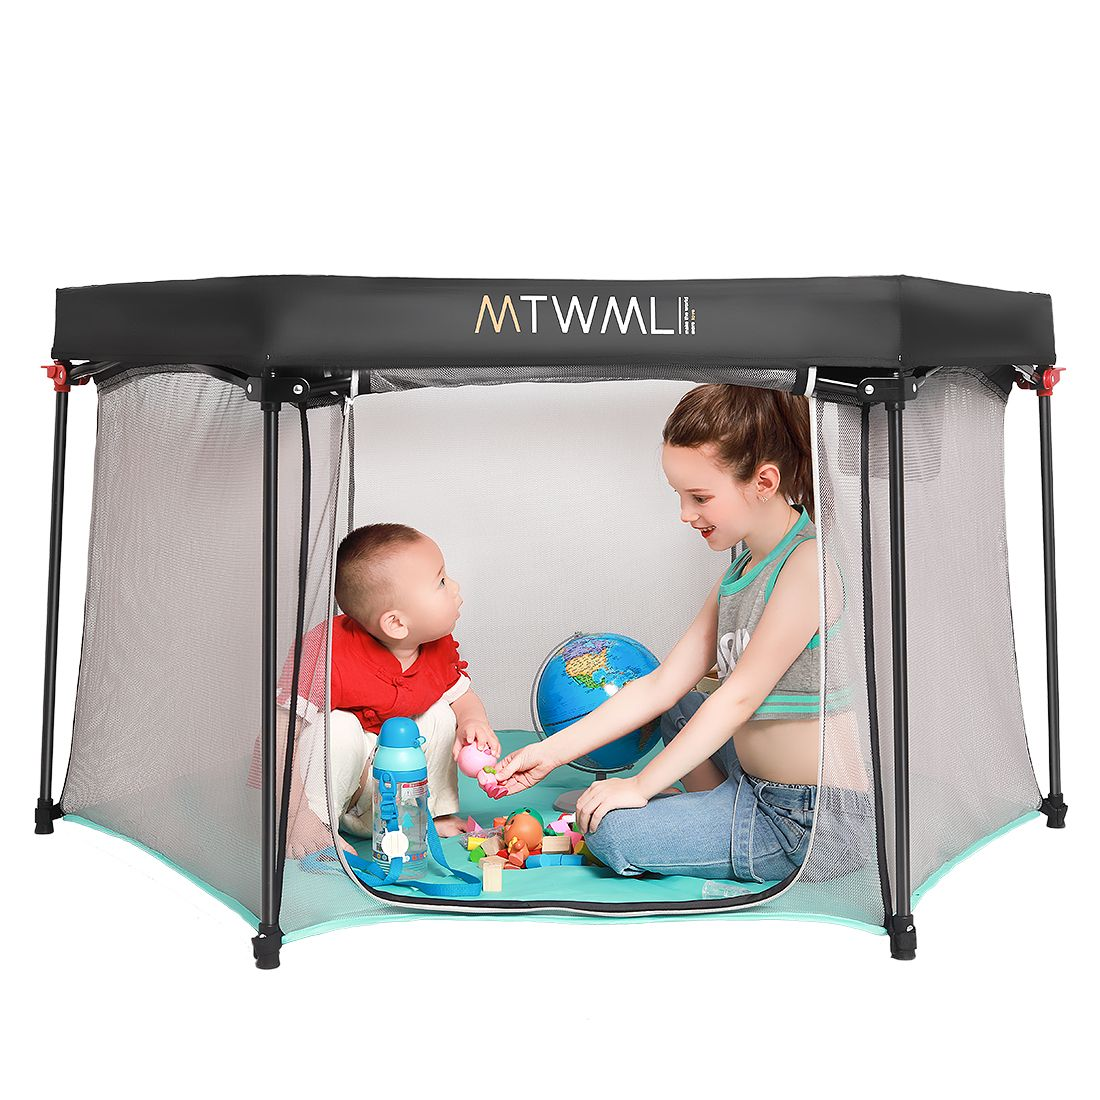 I Wonder If I Could Make This Larger To Set Up In Our Backyard Around The Playset Baby Play Areas Baby Play Yard Baby Playpen